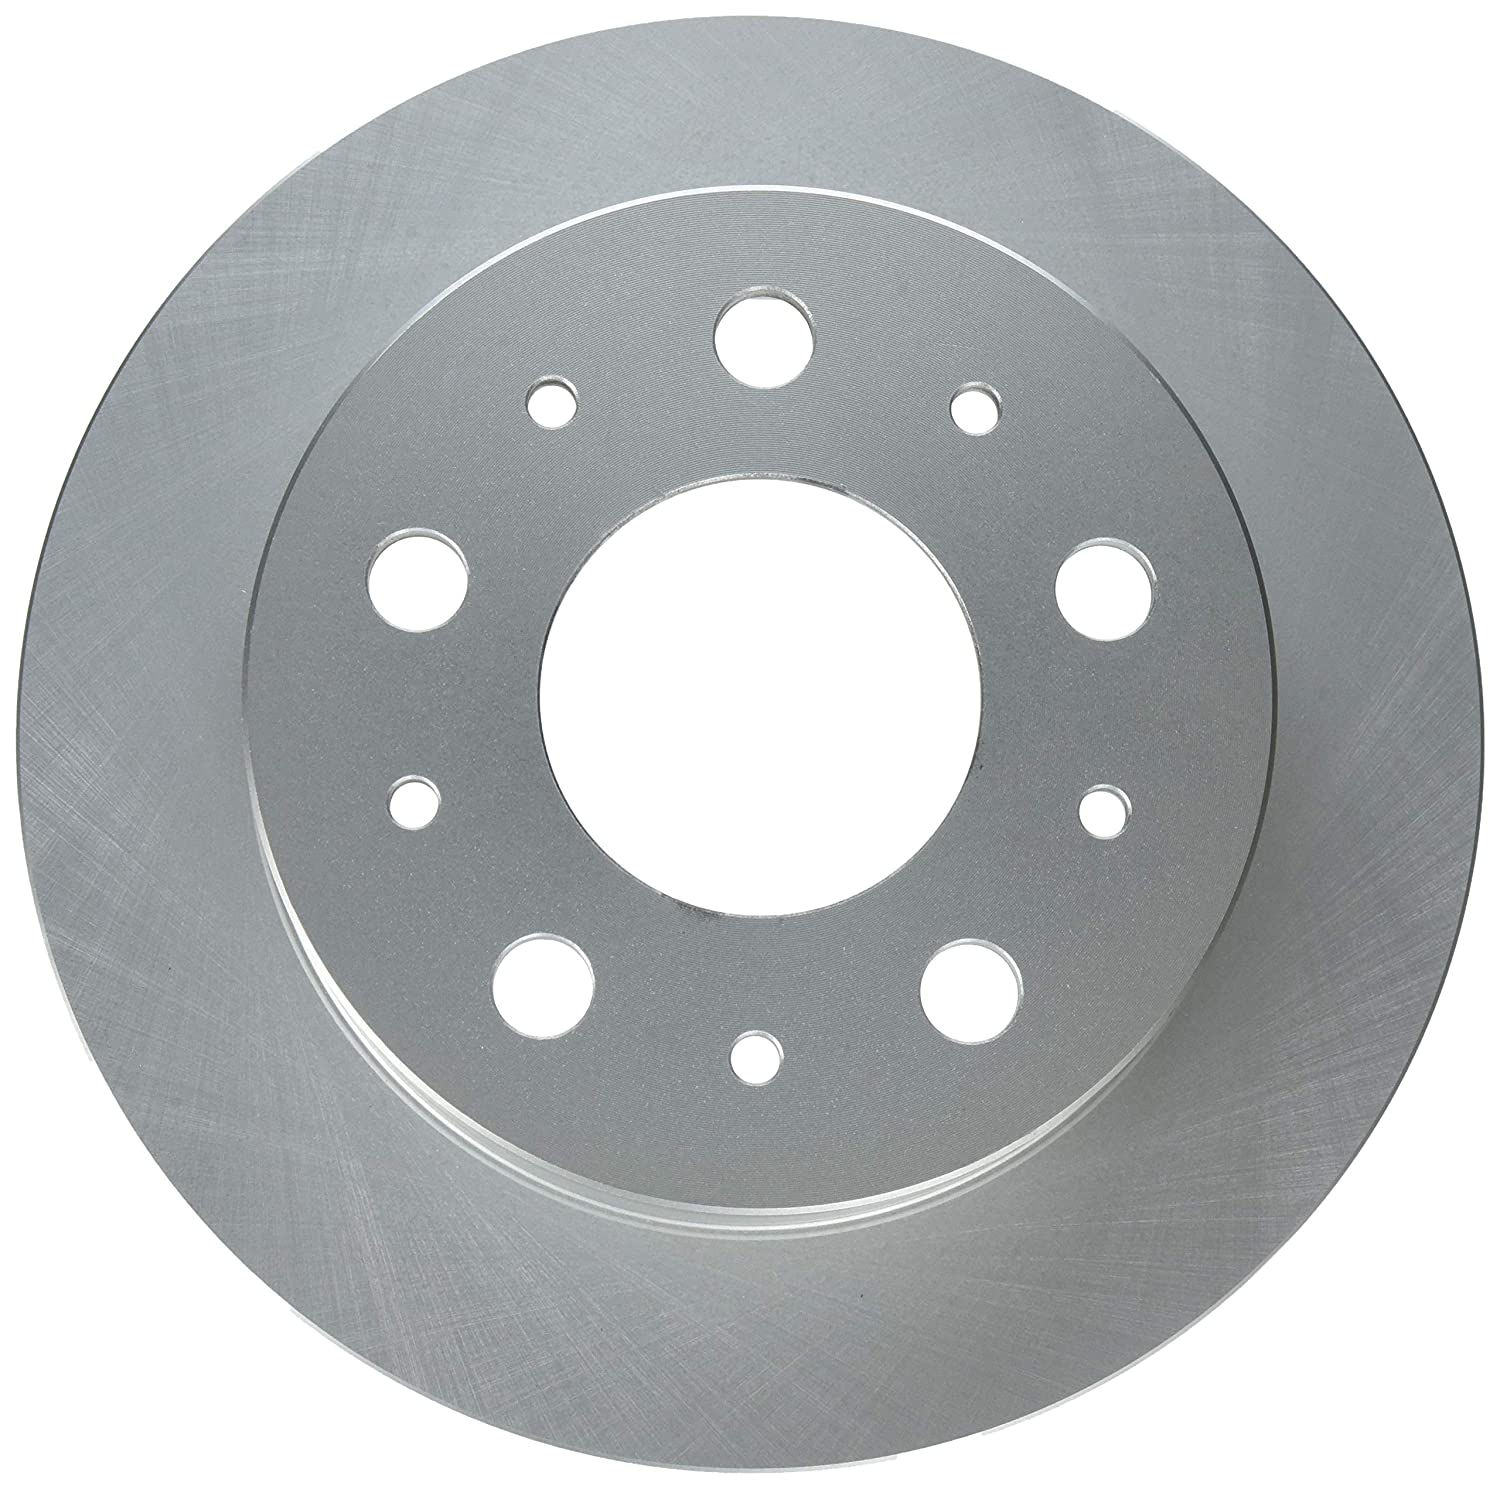 Raybestos 781109FZN Rust Prevention Technology Coated Rotor Brake